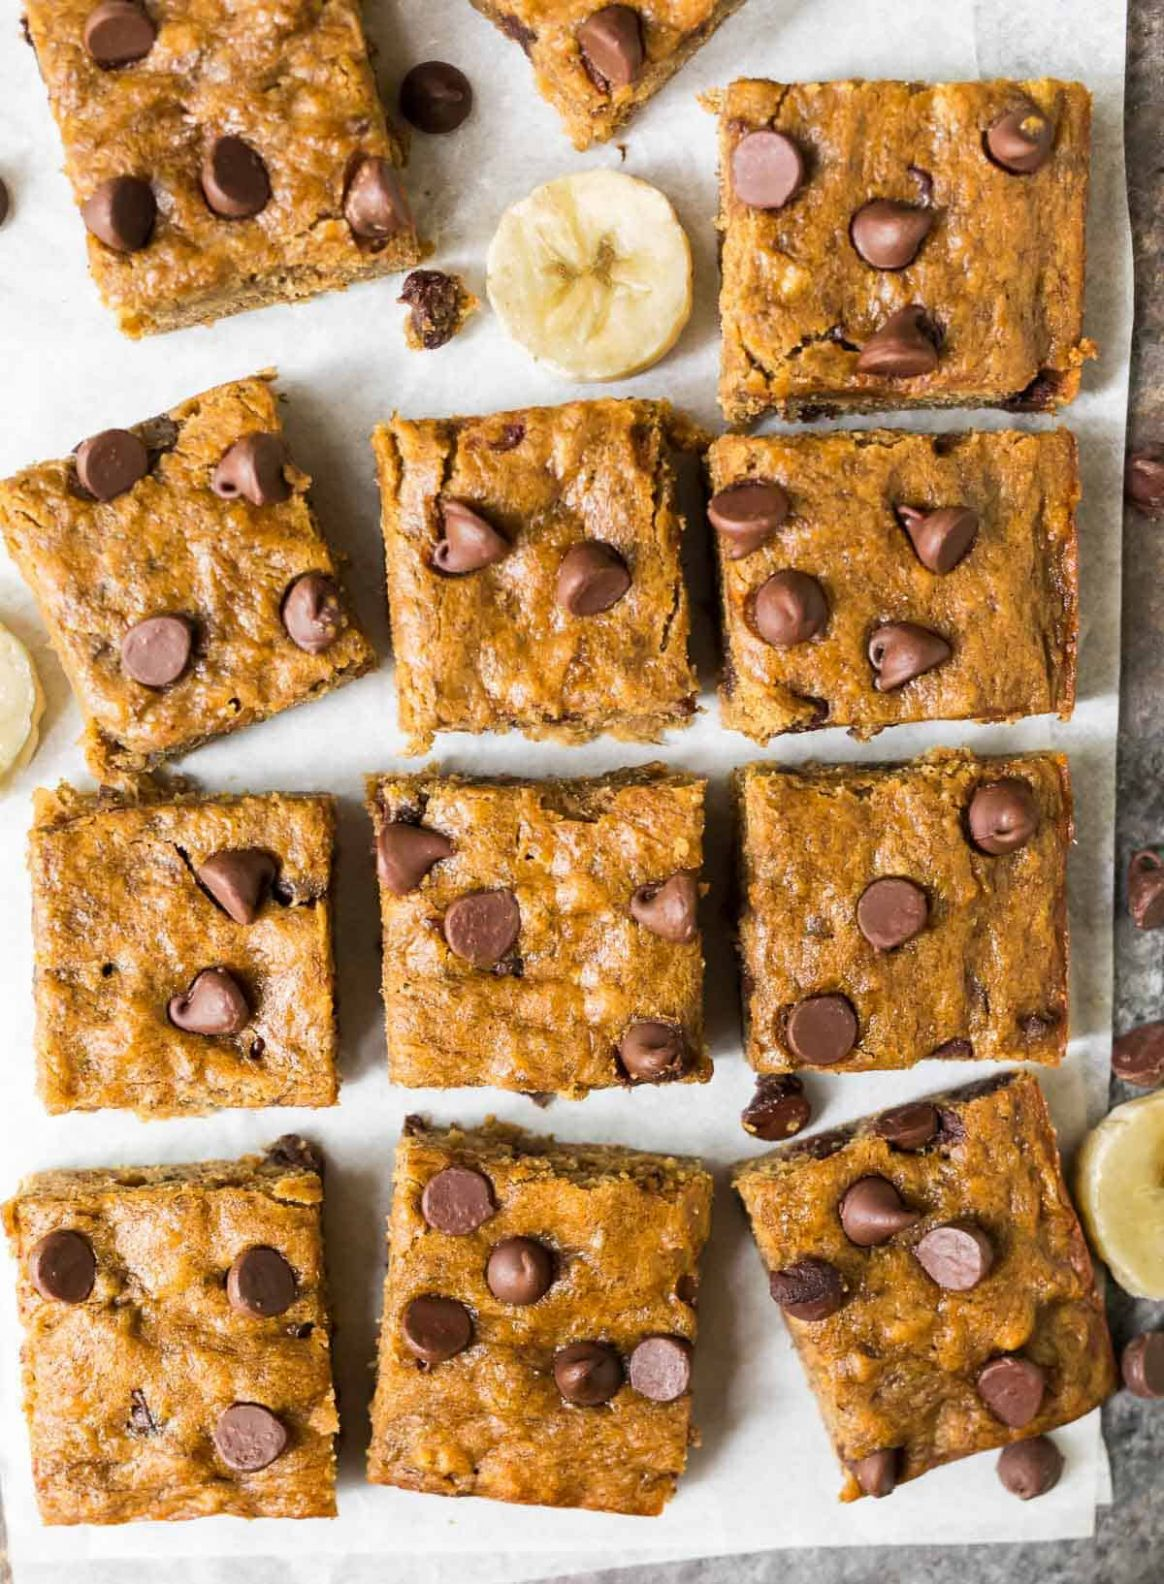 Banana Bars with Chocolate Chips - Simple Recipes Using Bananas